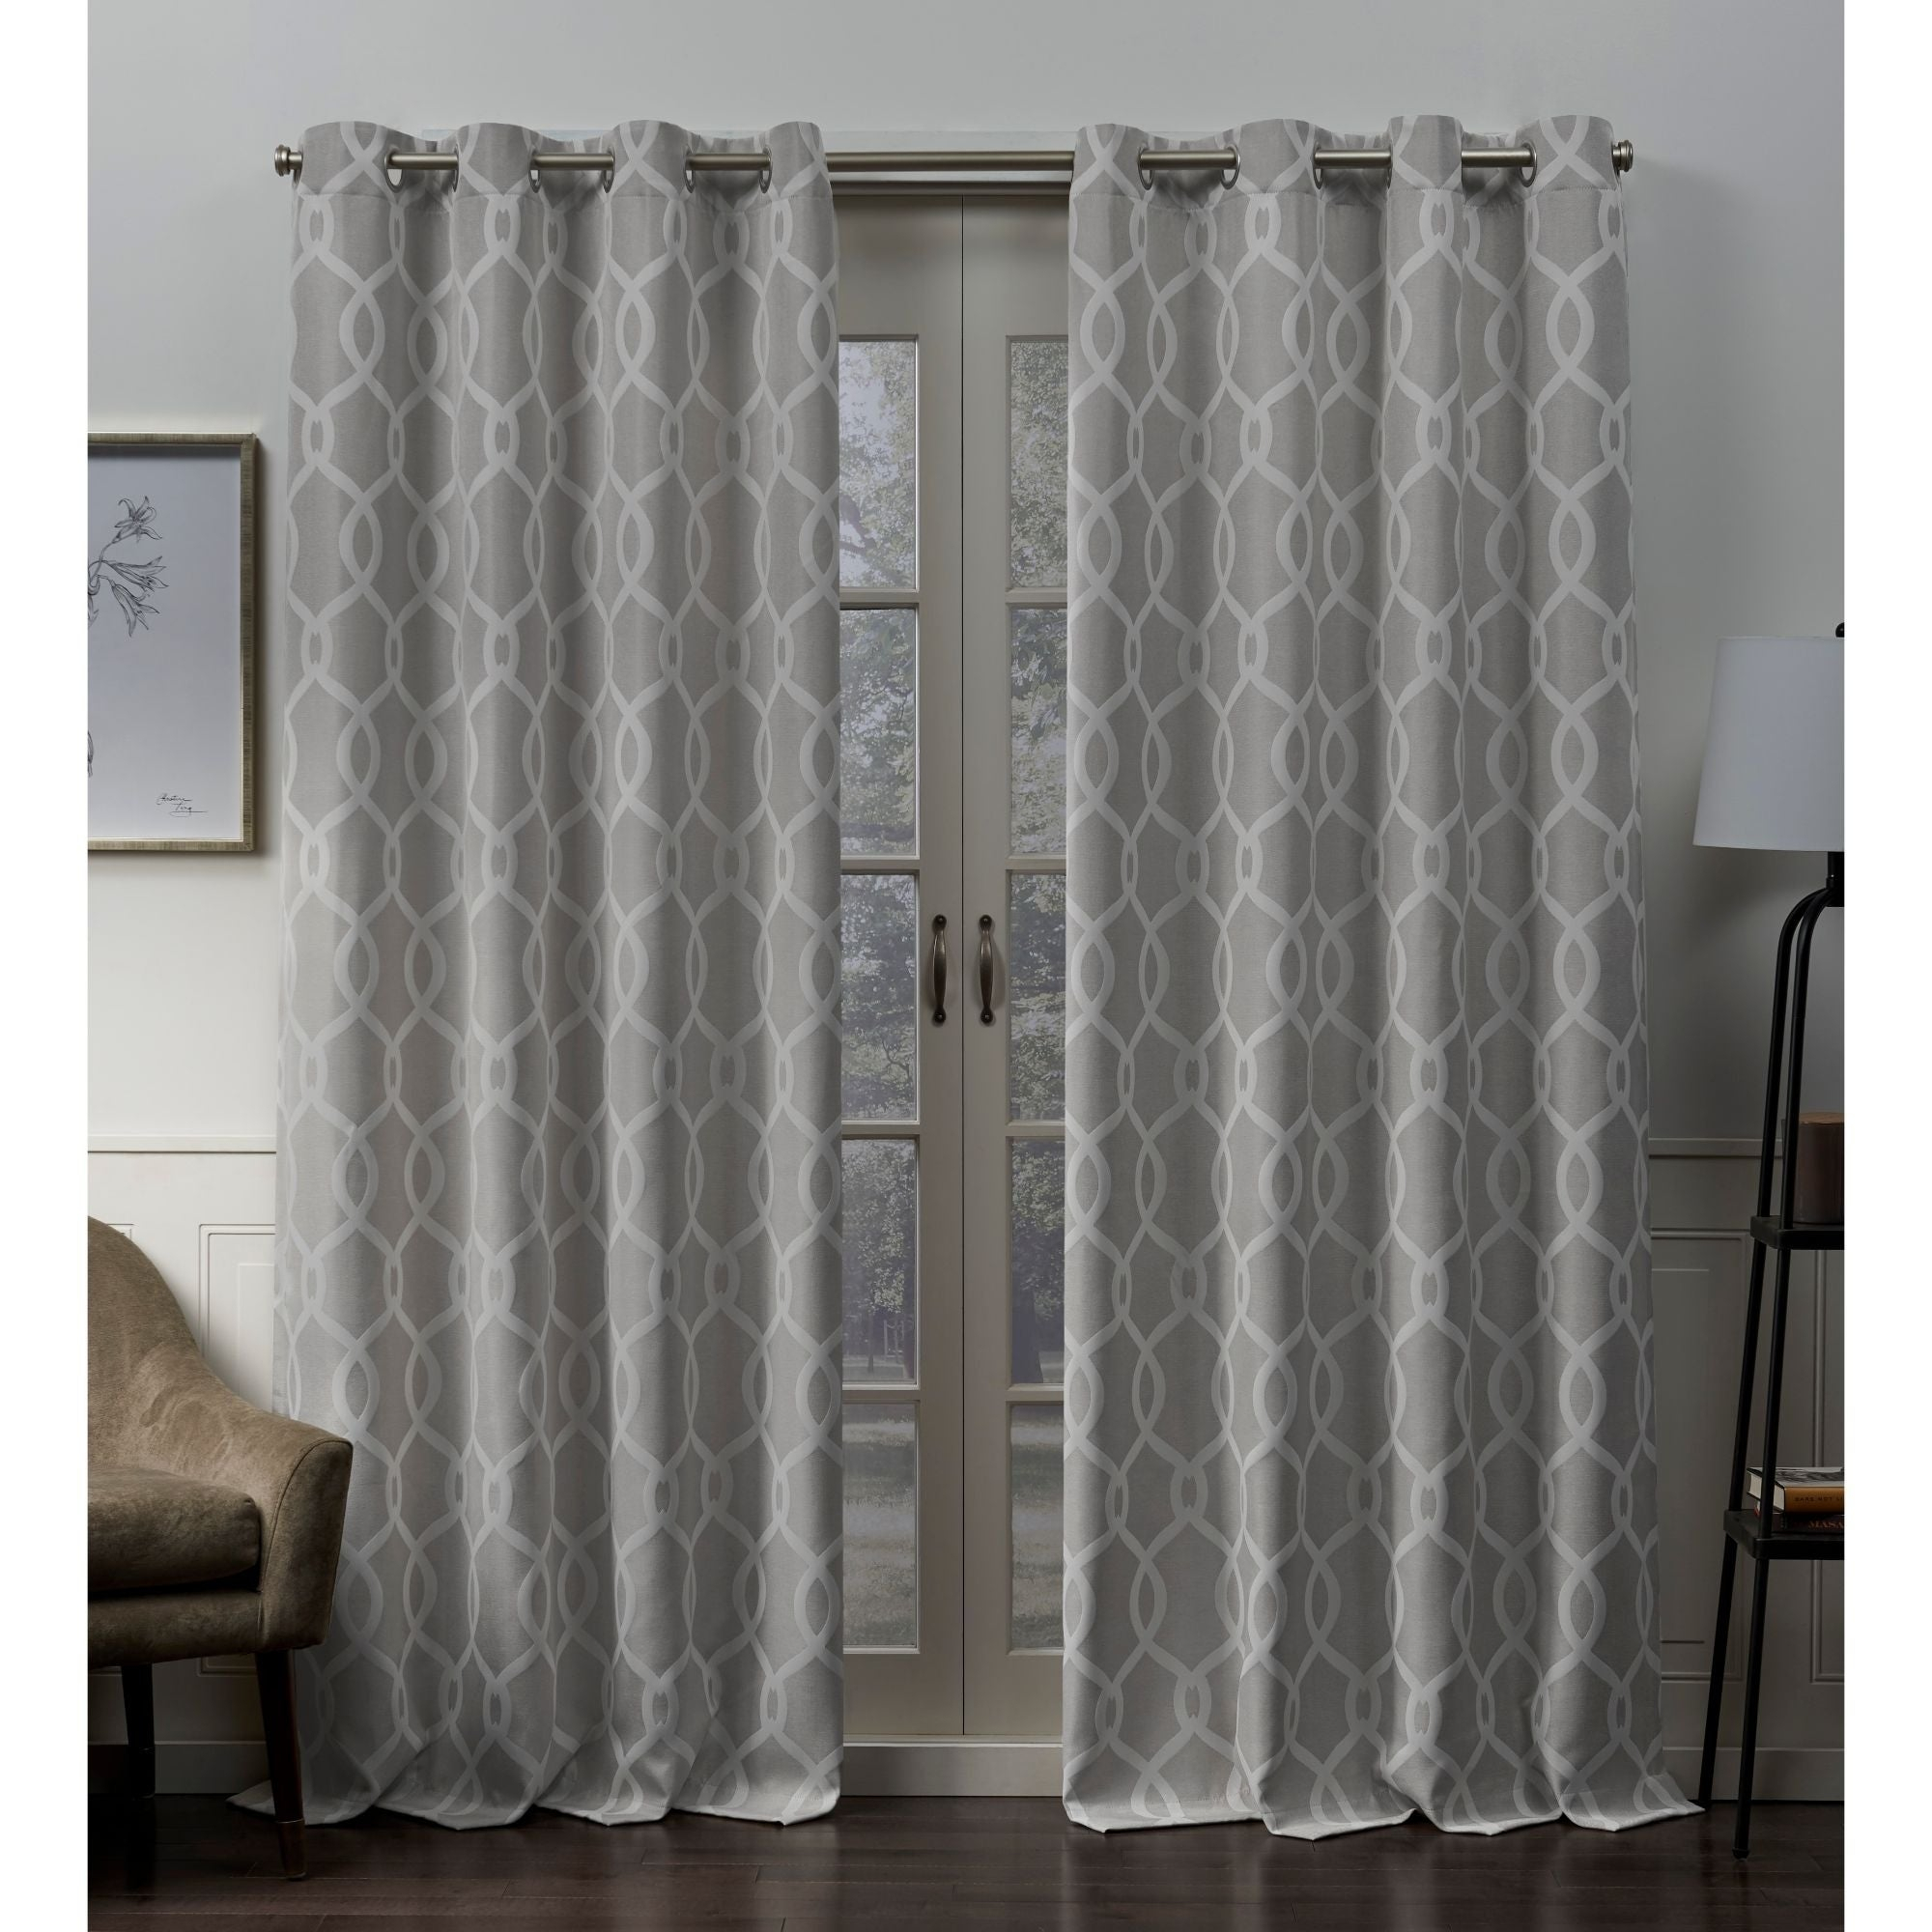 Ati Home Trilogi Woven Blackout Grommet Top Curtain Panel Pair Within Woven Blackout Curtain Panel Pairs With Grommet Top (View 9 of 30)